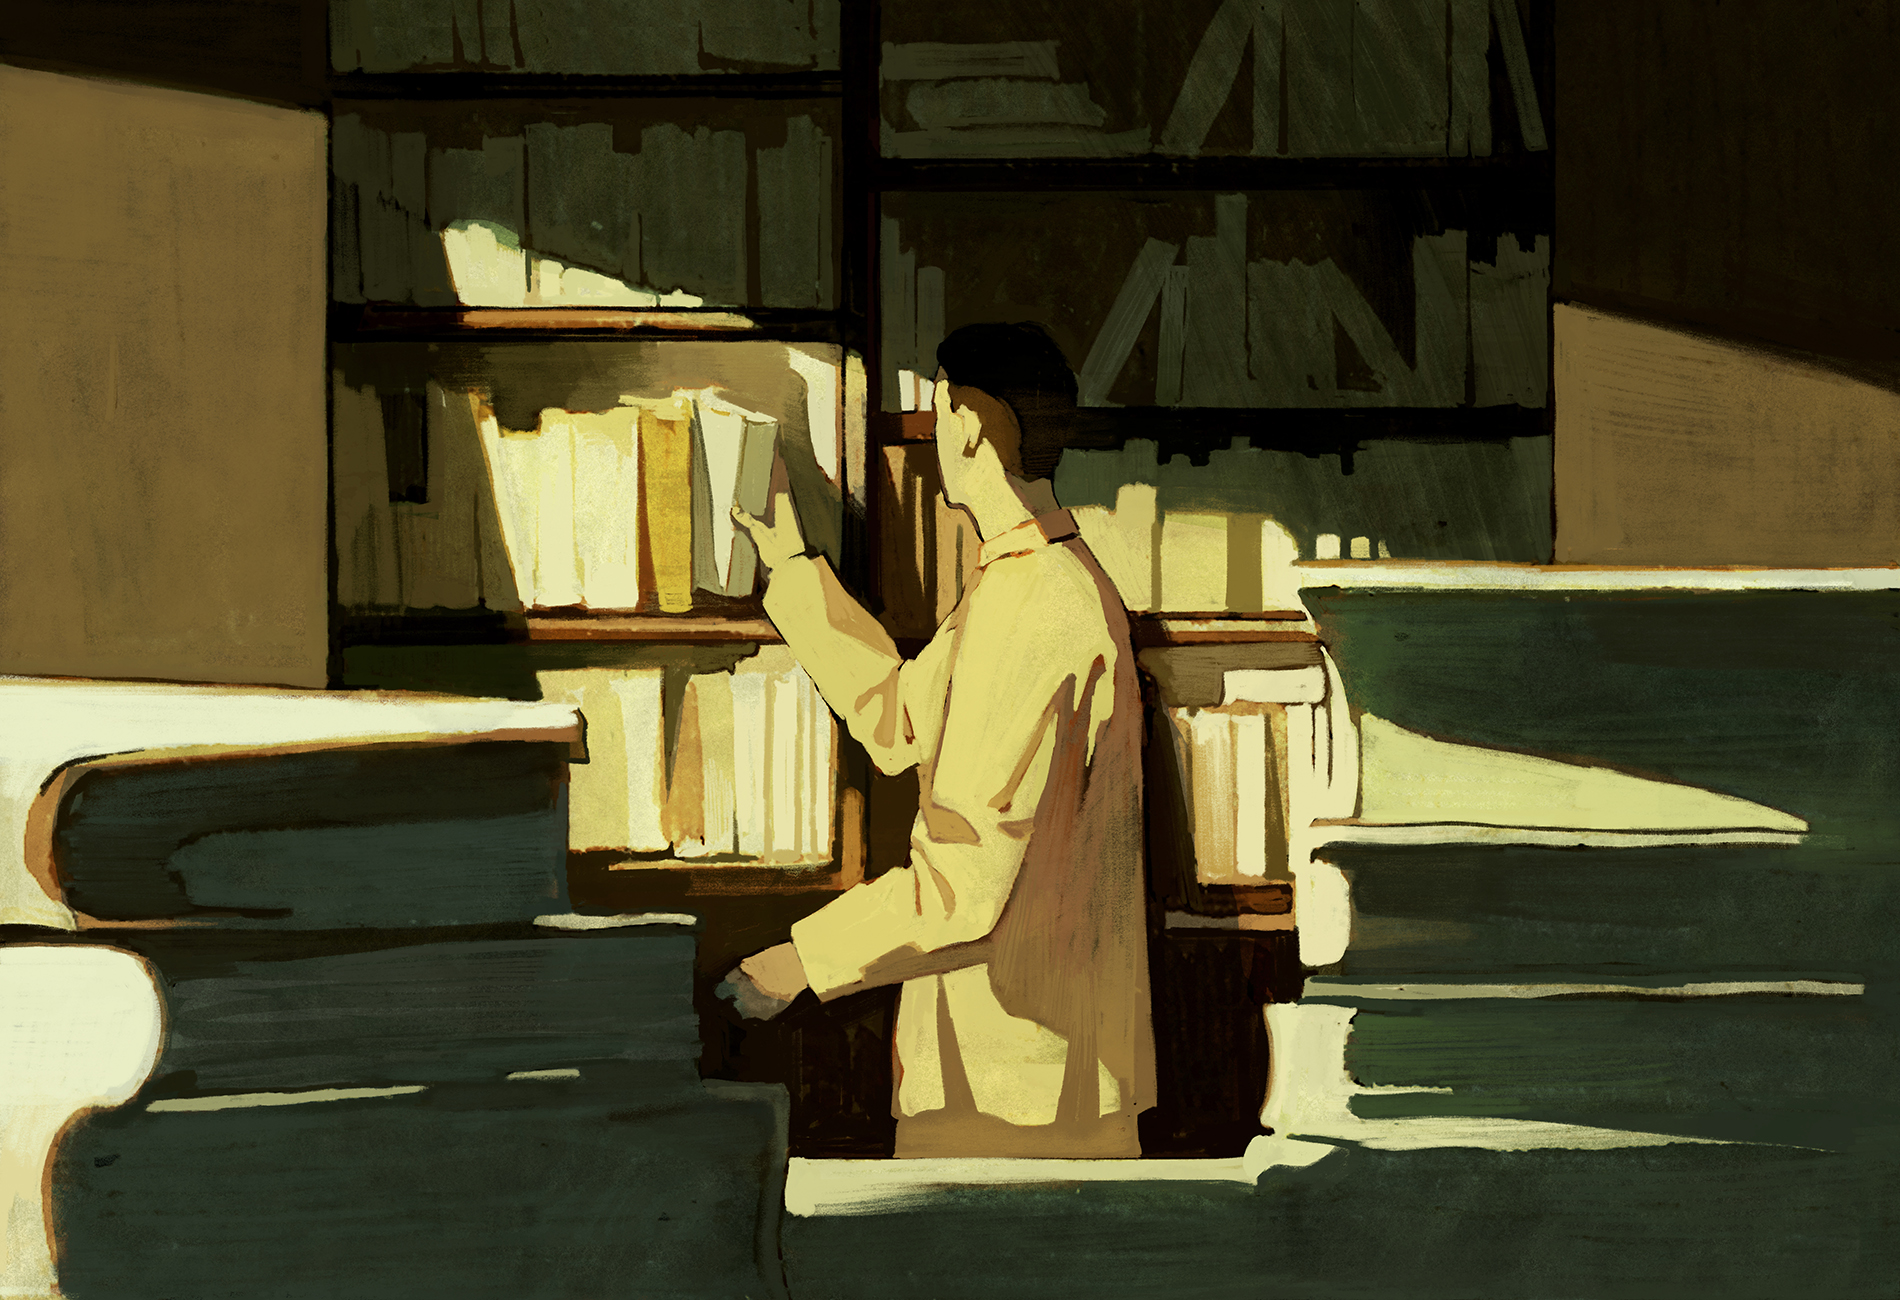 In this illustration, a man is shelving books in a peaceful library, standing in sunlight.